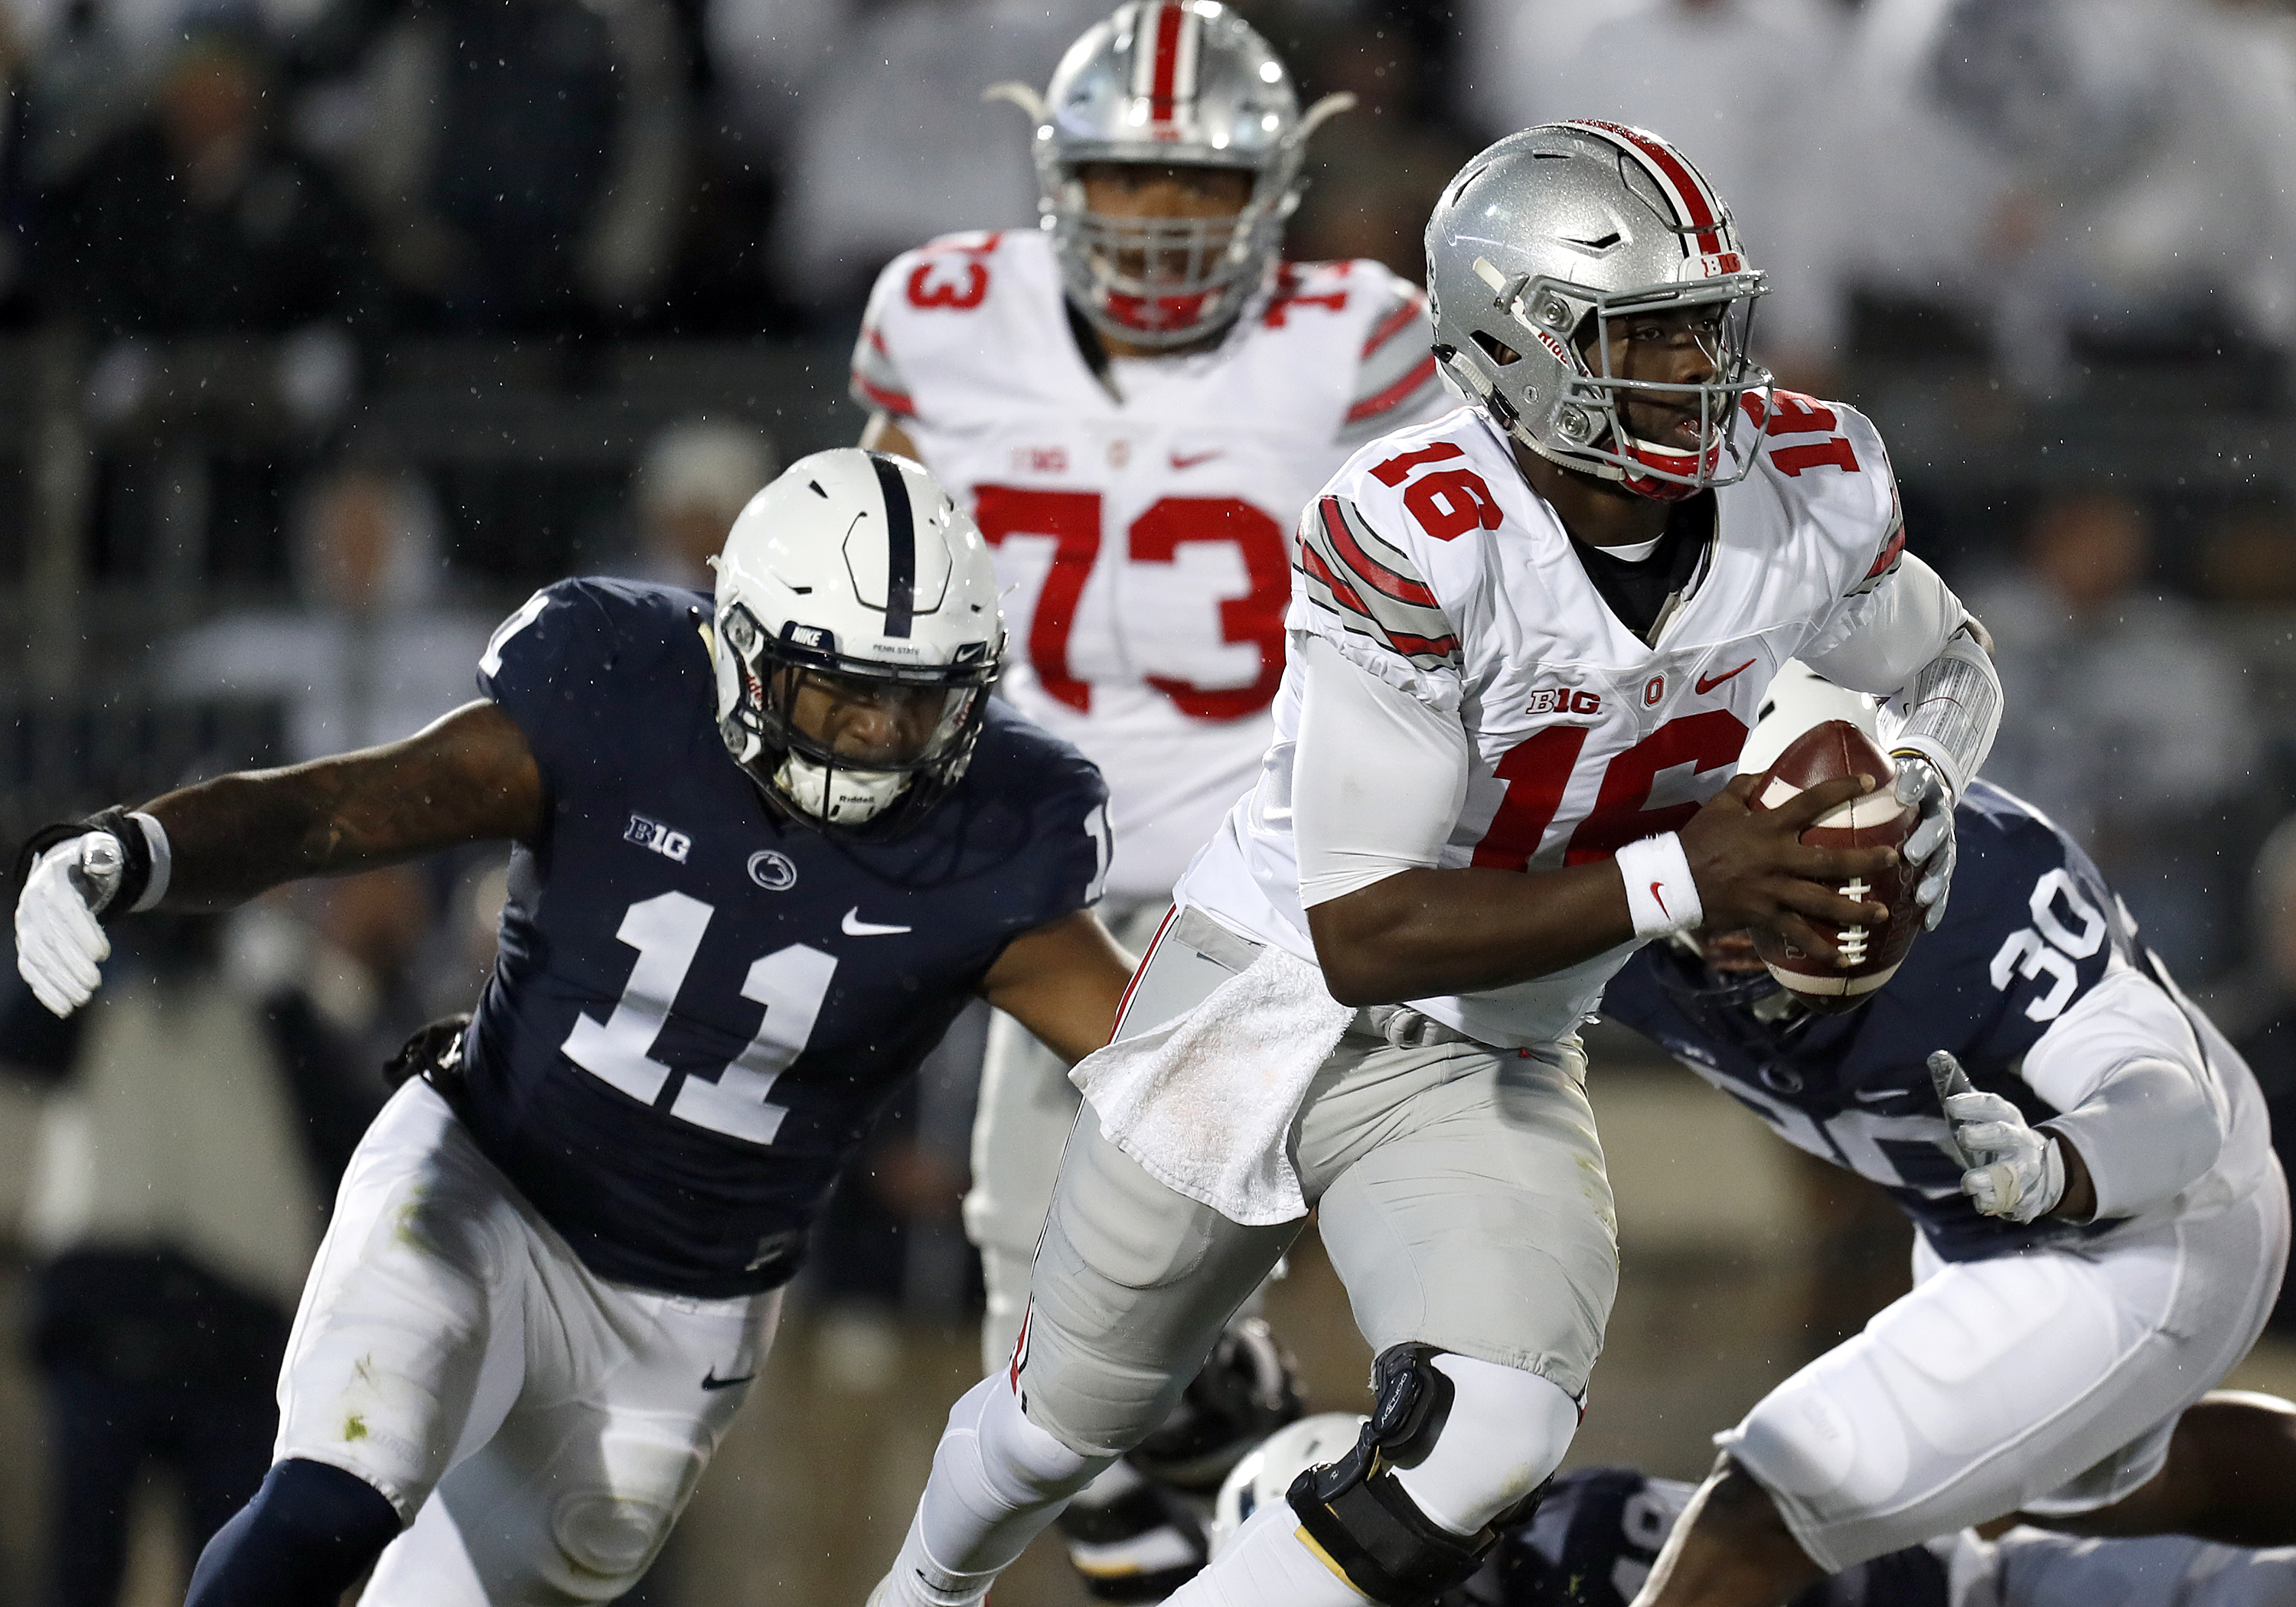 Why Ohio State's Loss to Penn State Was a Good Thing